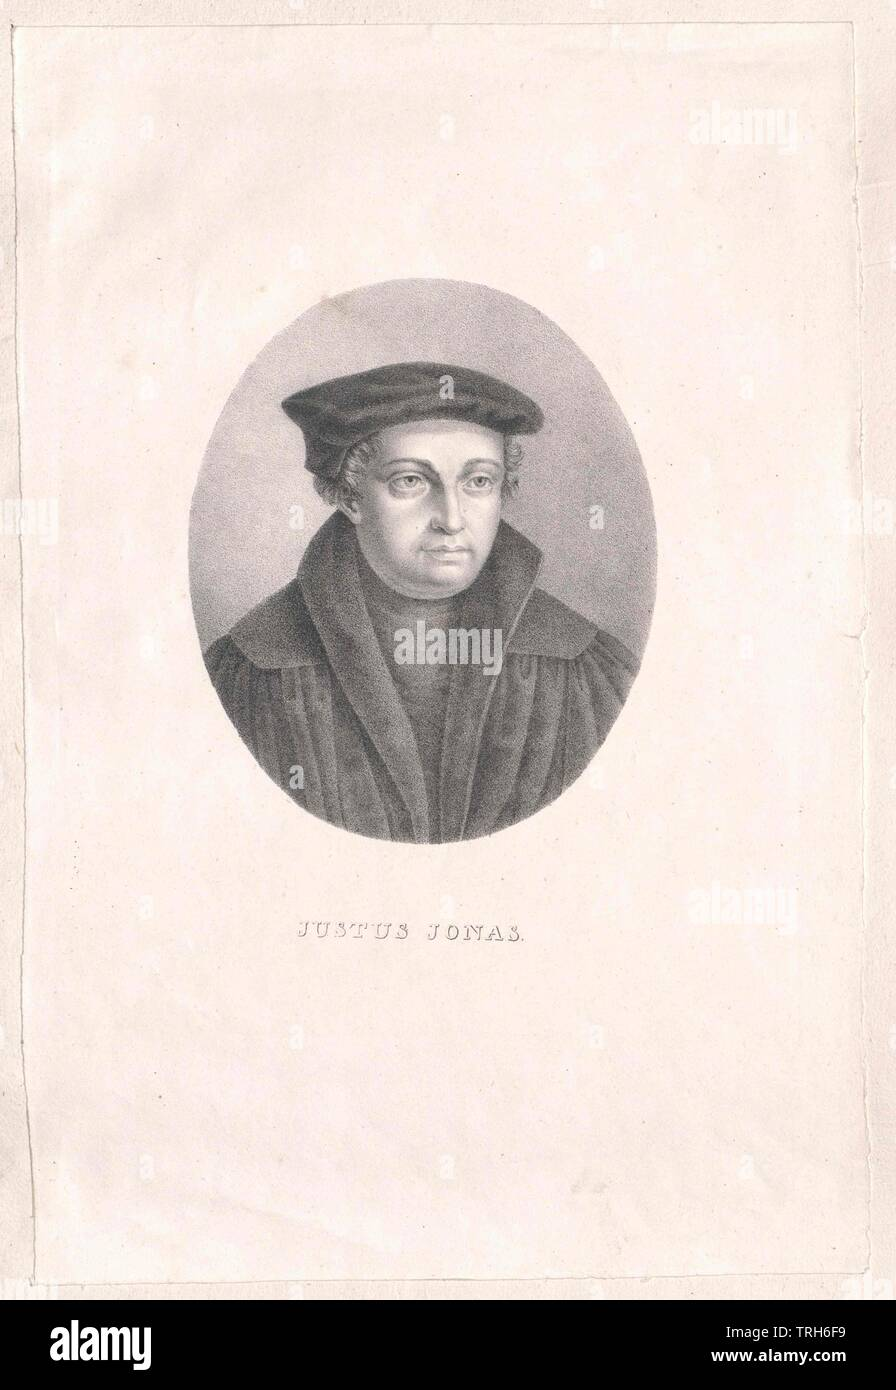 Jonah, Justus,ecclesiastic, chaplain, chaplains, false teachers, reformer, theology, people, full-length, full length, man, men, male, manly, Additional-Rights-Clearance-Info-Not-Available - Stock Image